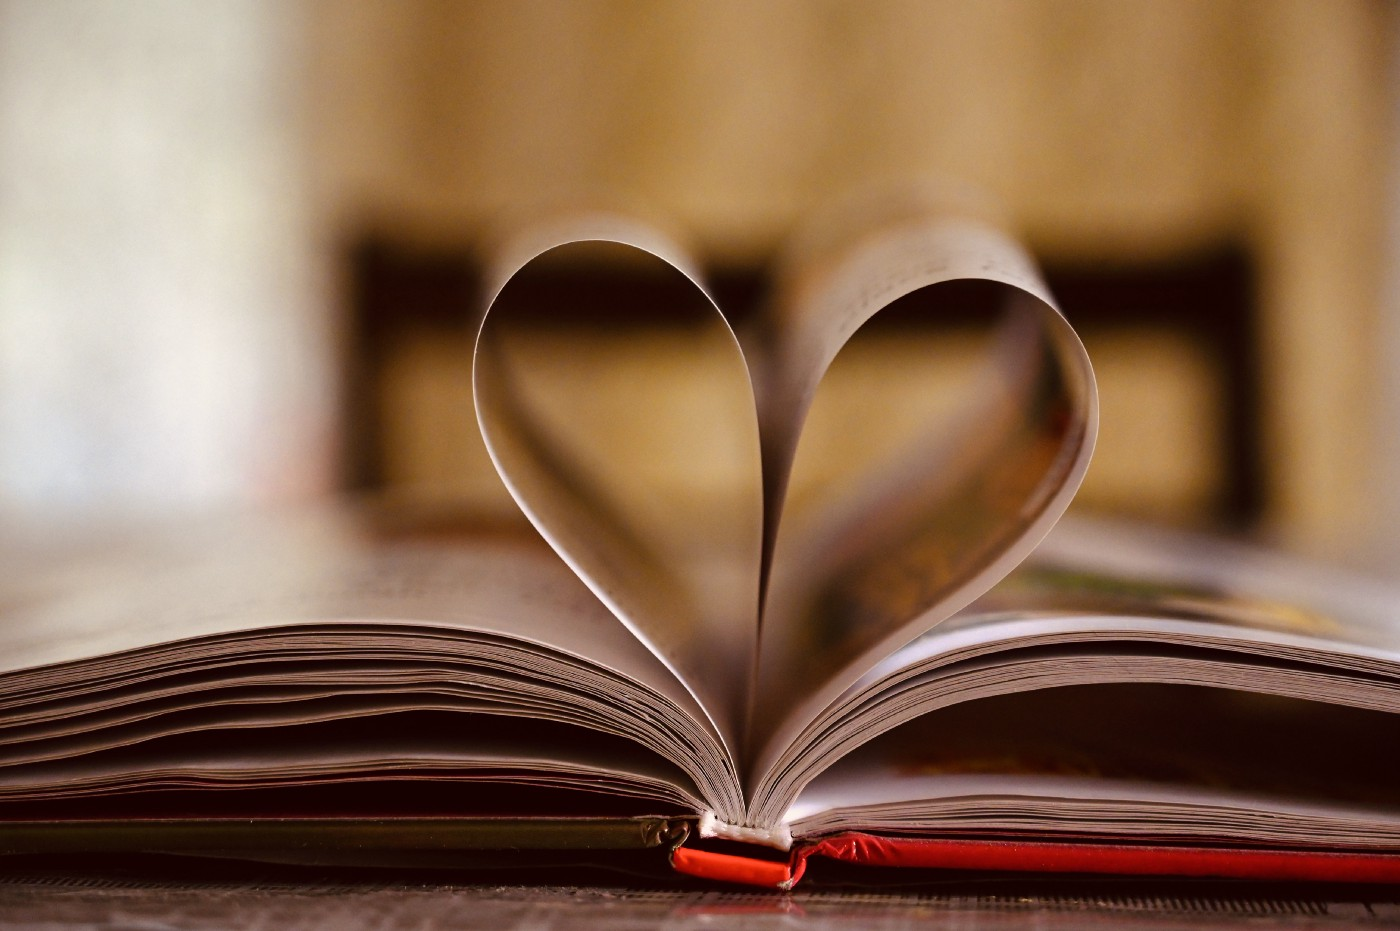 Book with two pages making the shape of a heart